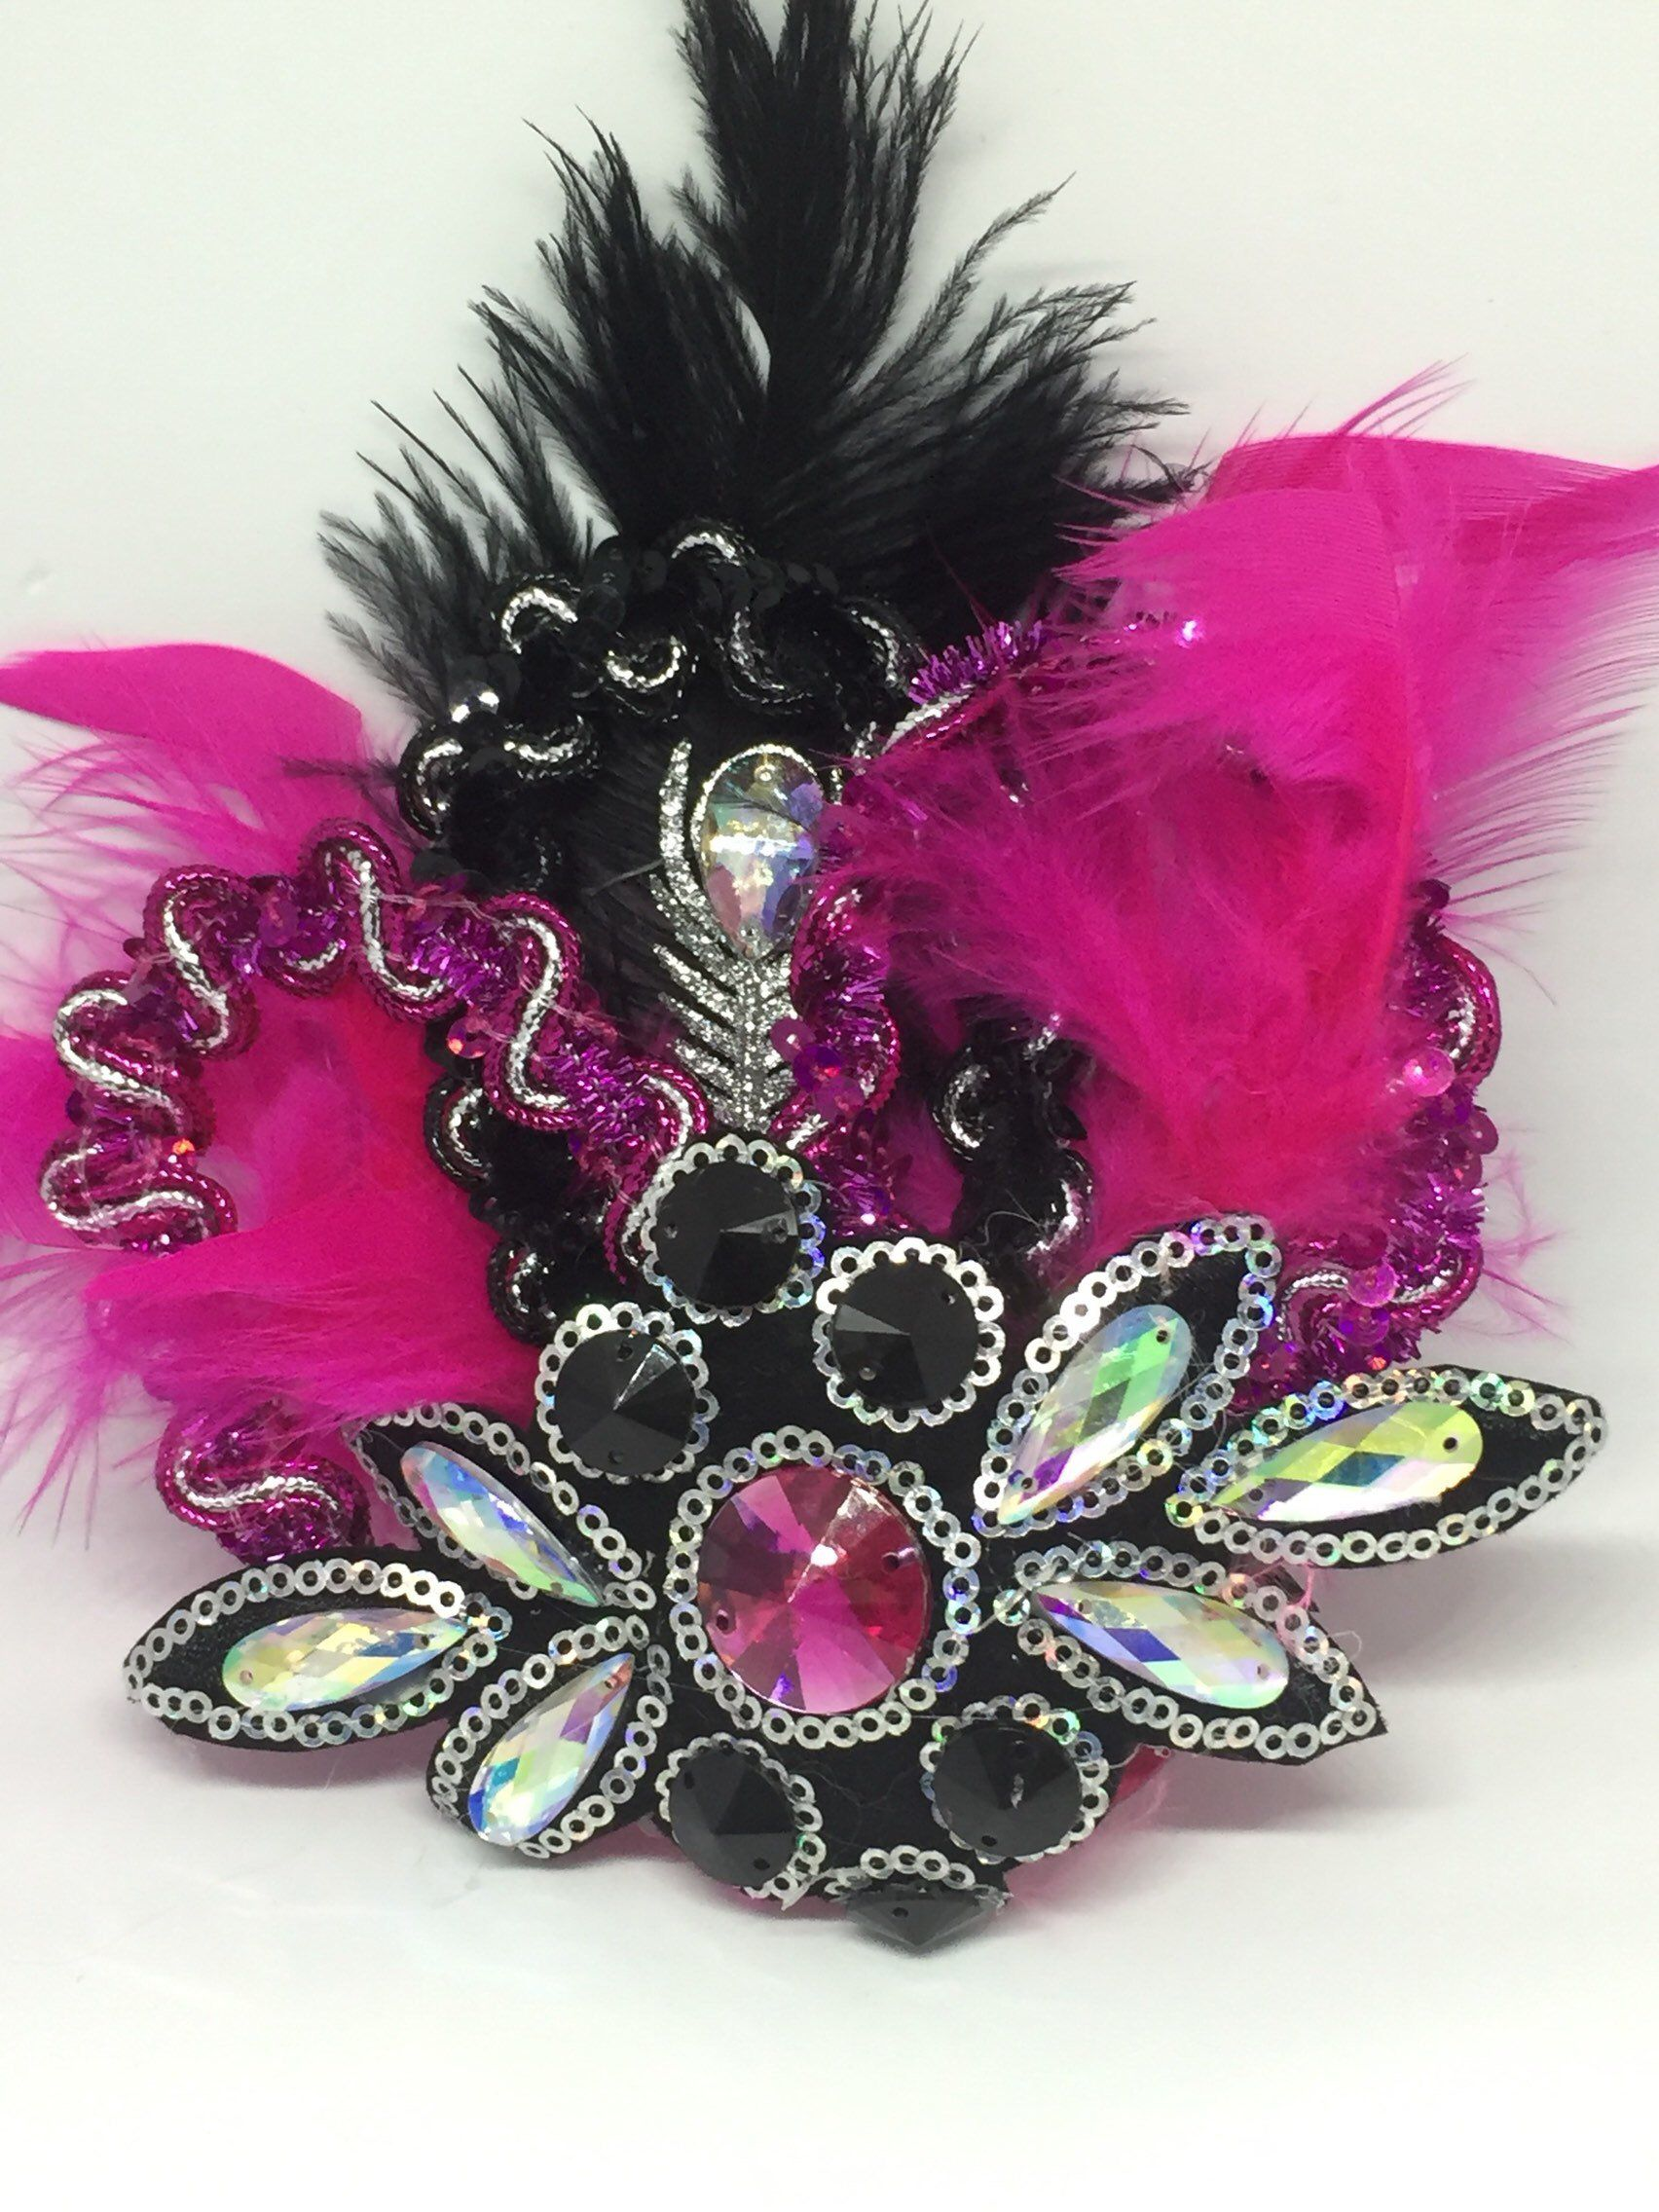 b42e96fc Excited to share the latest addition to my #etsy shop: Black and Pink  headpiece